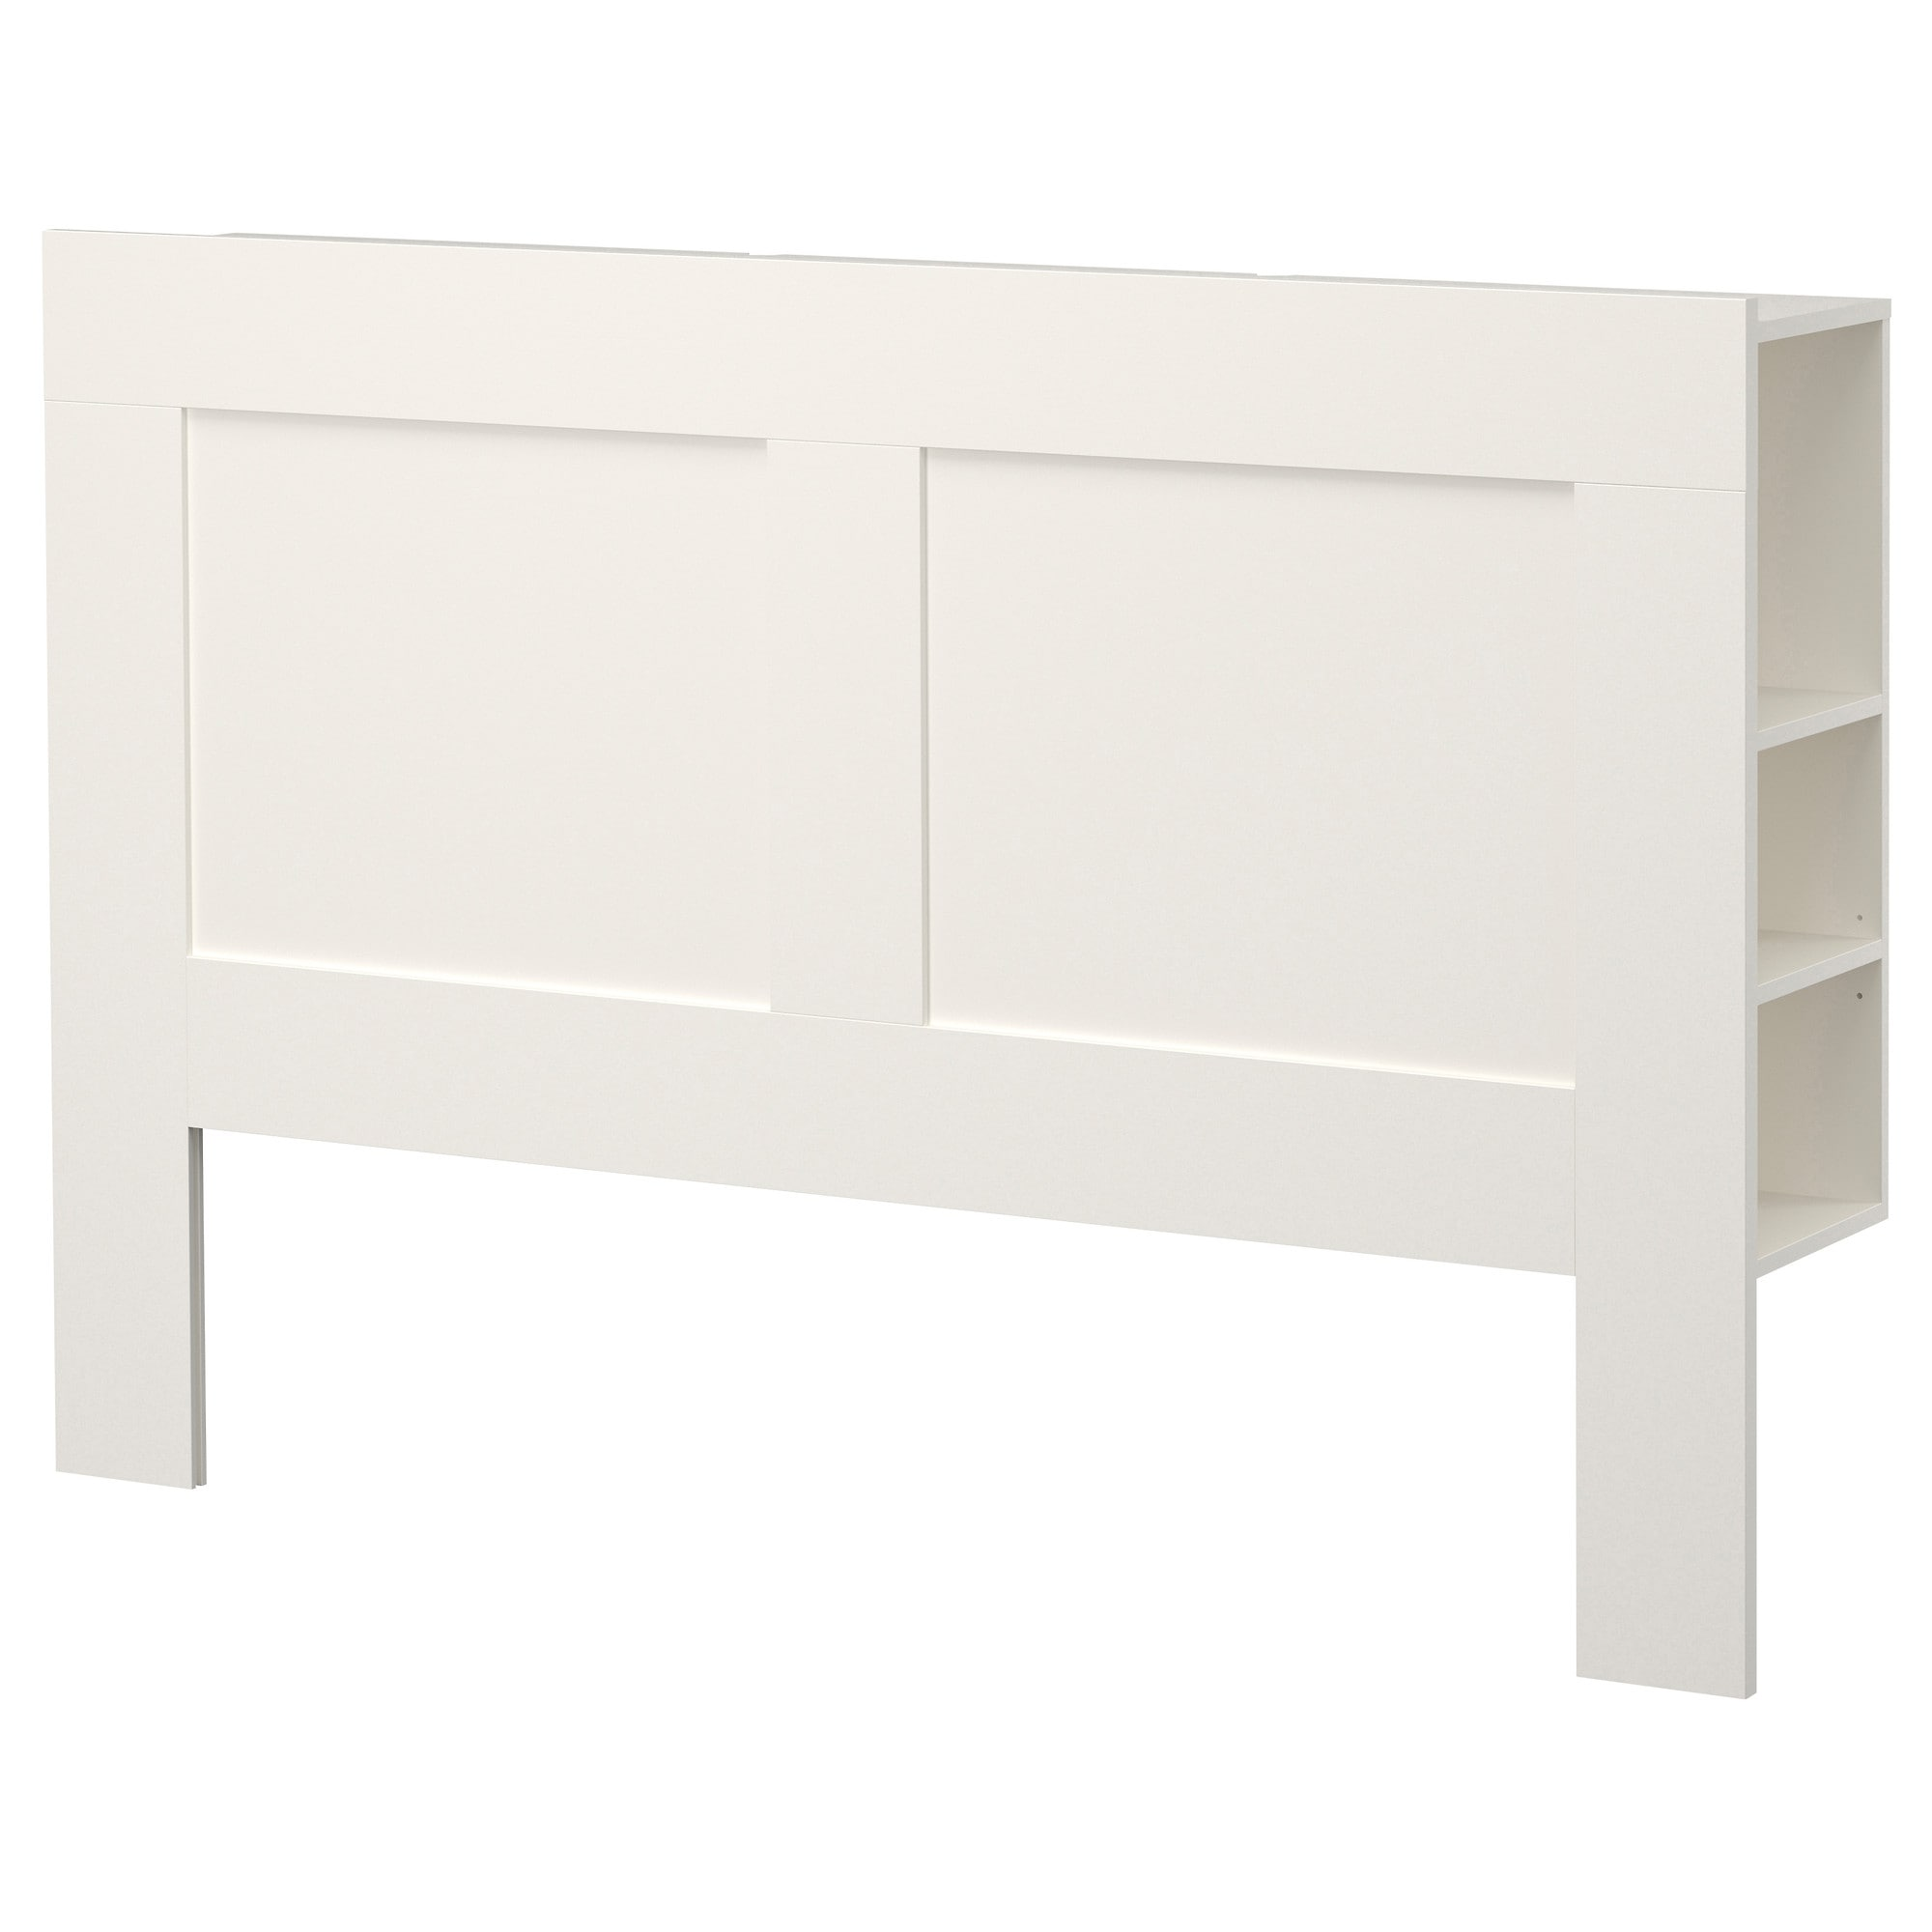 Ikea headboard storage interior decorating accessories - Ikea tete de lit bois ...